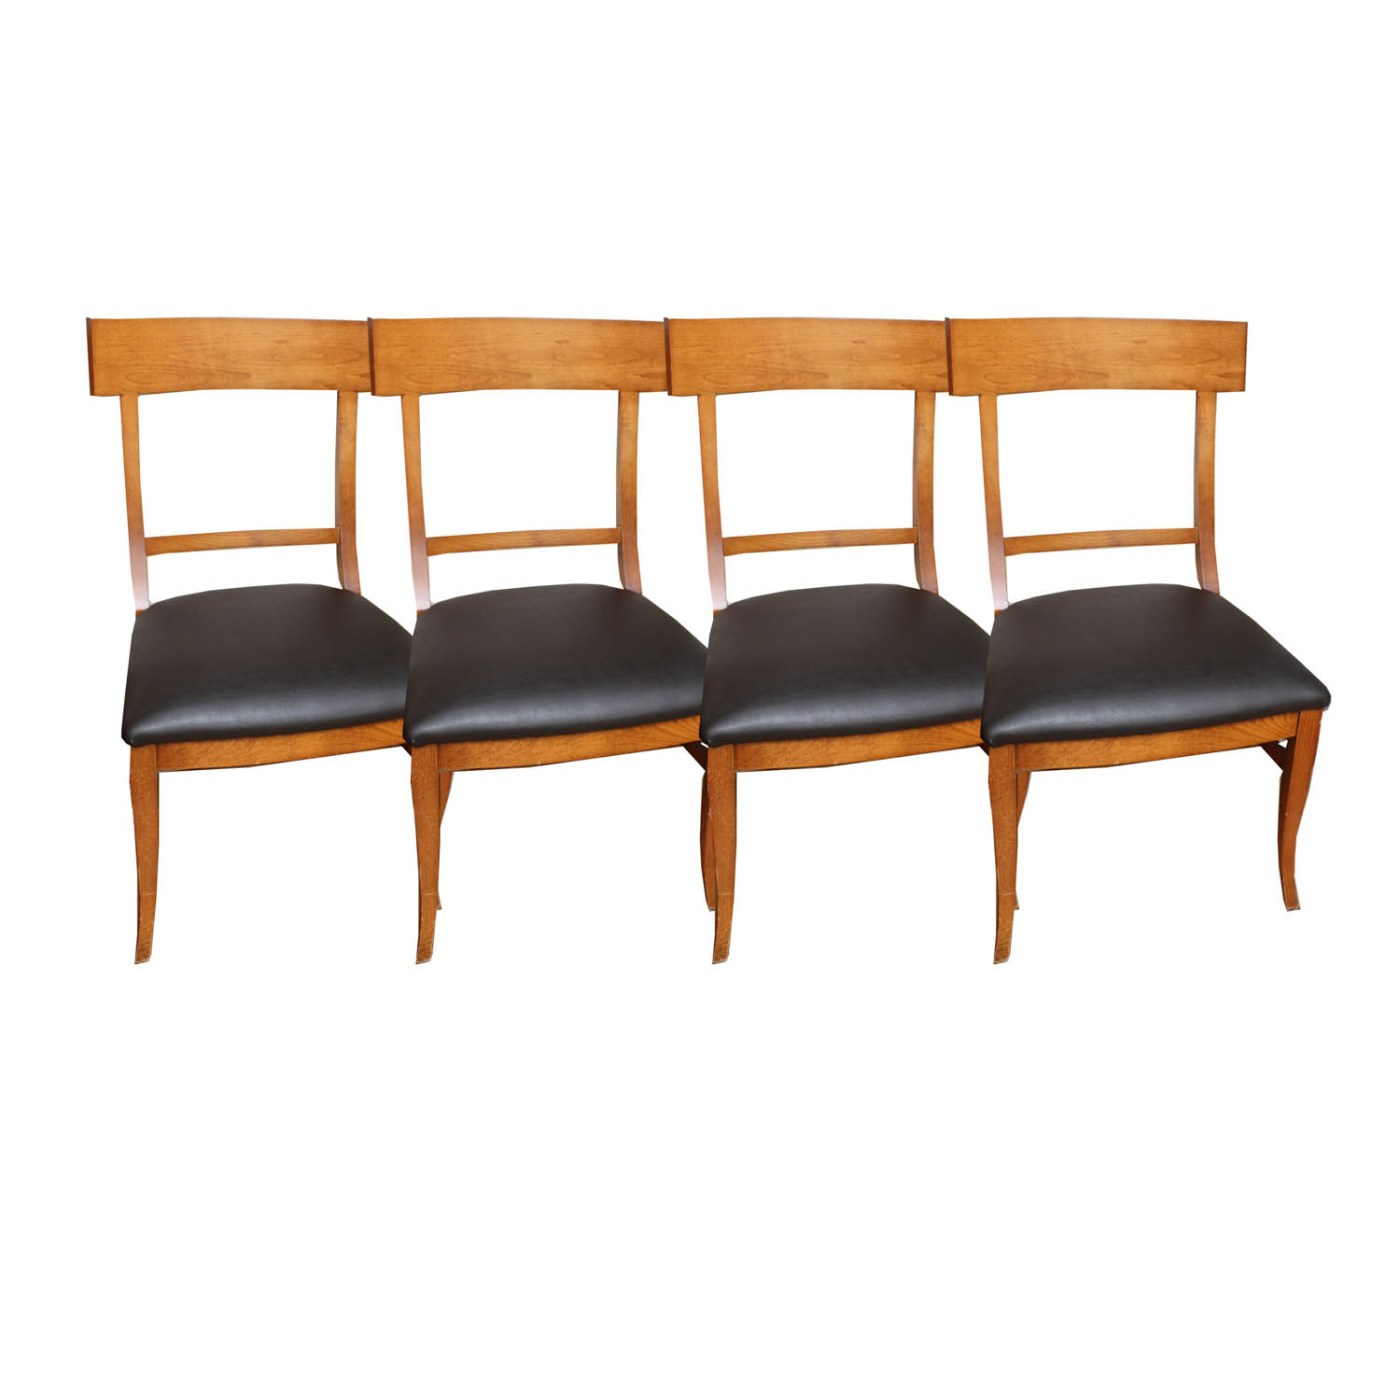 Arhaus Dining Chairs Arhaus Oak And Leather Dining Chairs Ebth